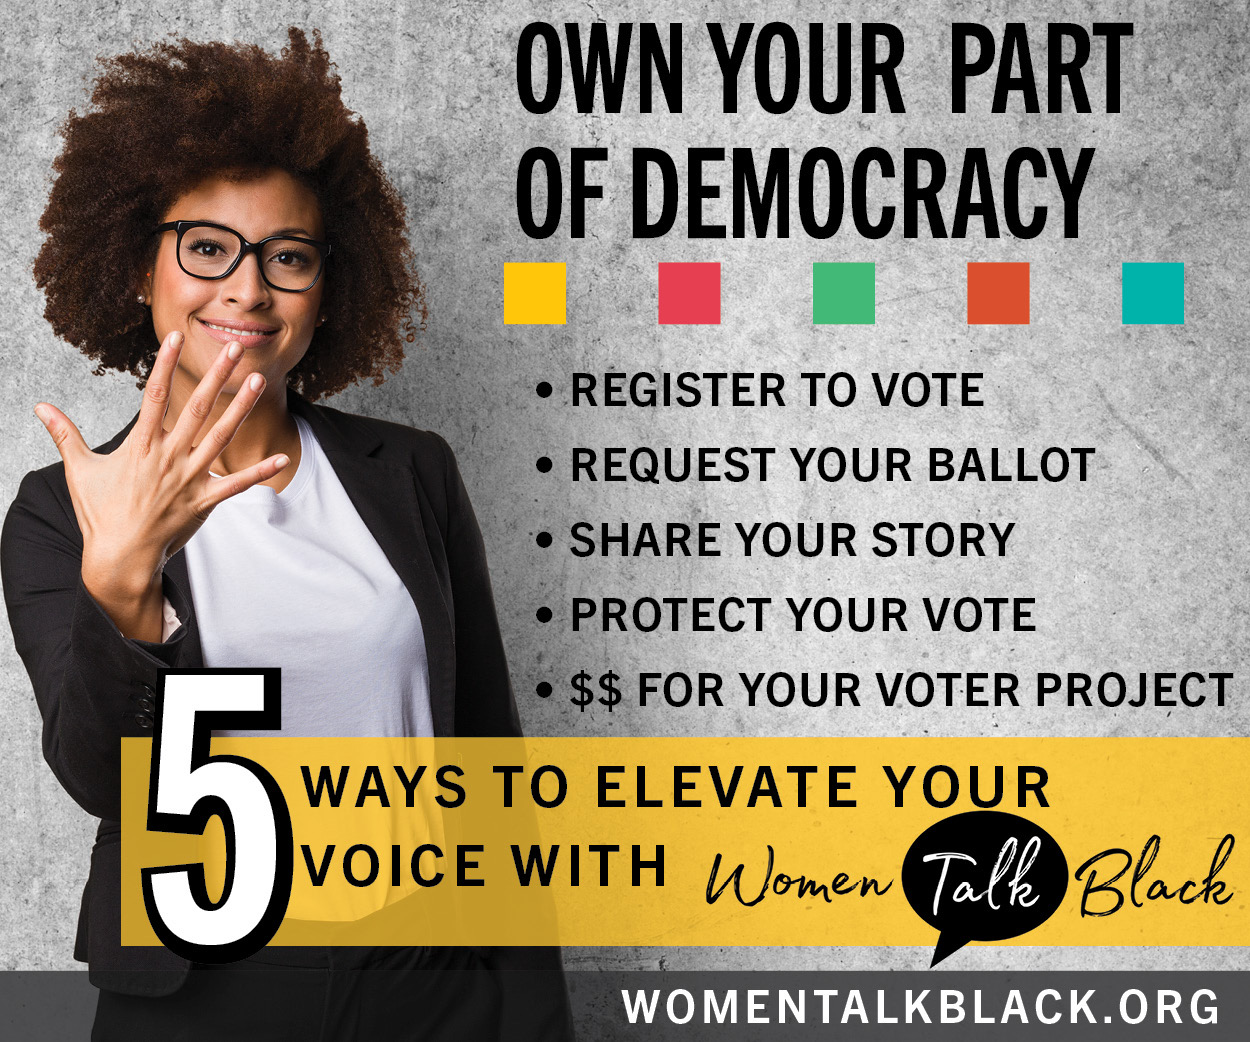 5 Ways to Elevate Your Voice with Women Talk Black